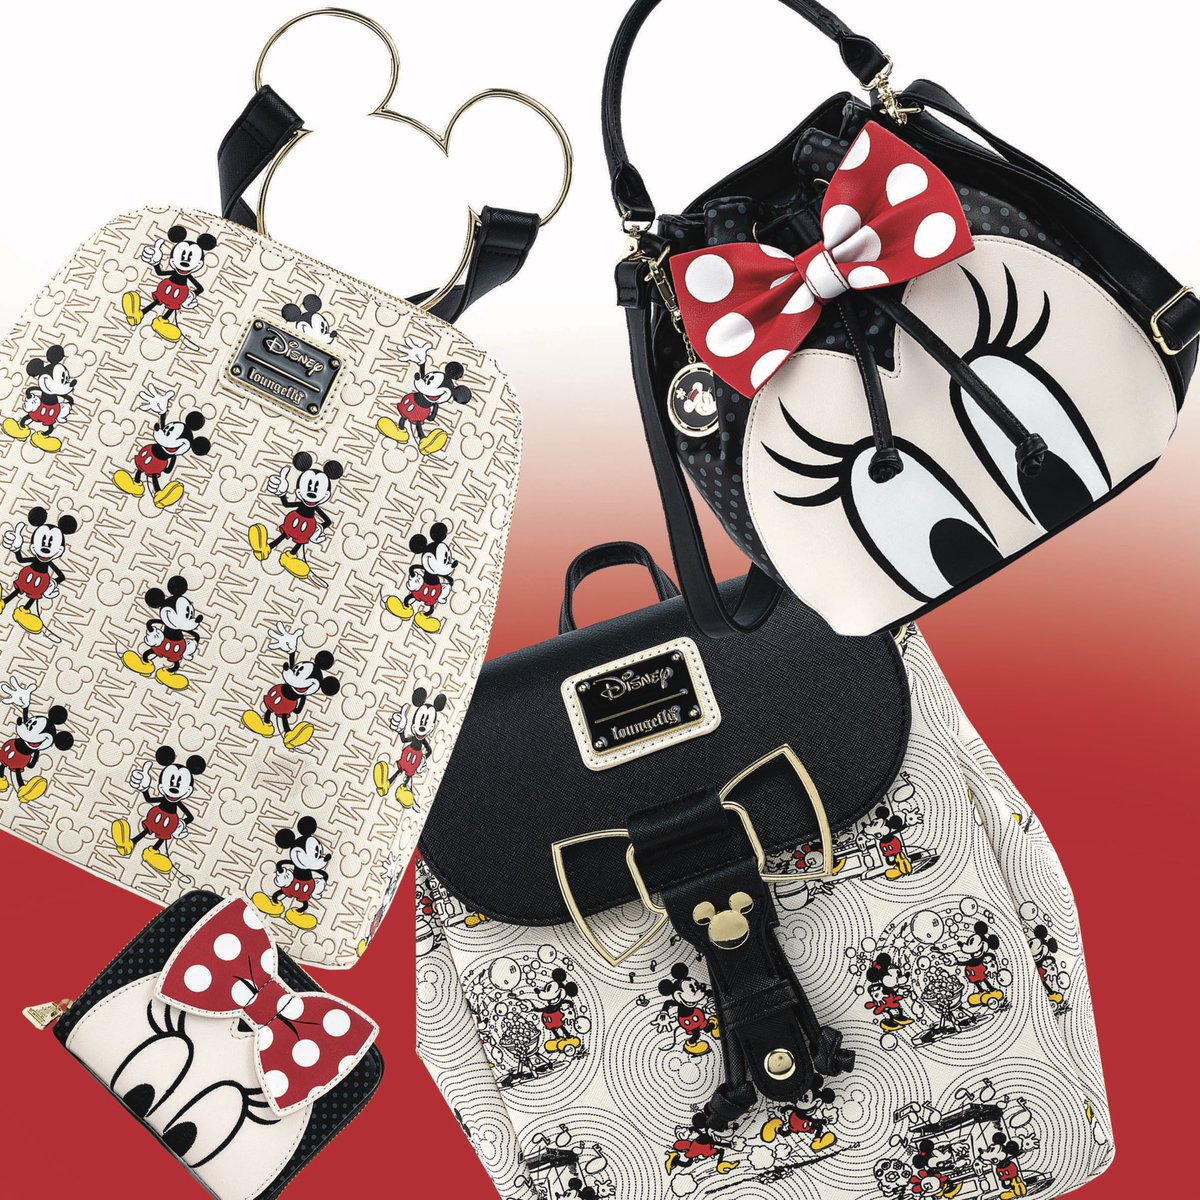 """""""Our newest Mickey and Minnie collection is full of amazing hardware and details and it's available now! Check out the whole collection at Loungefly.com! """""""